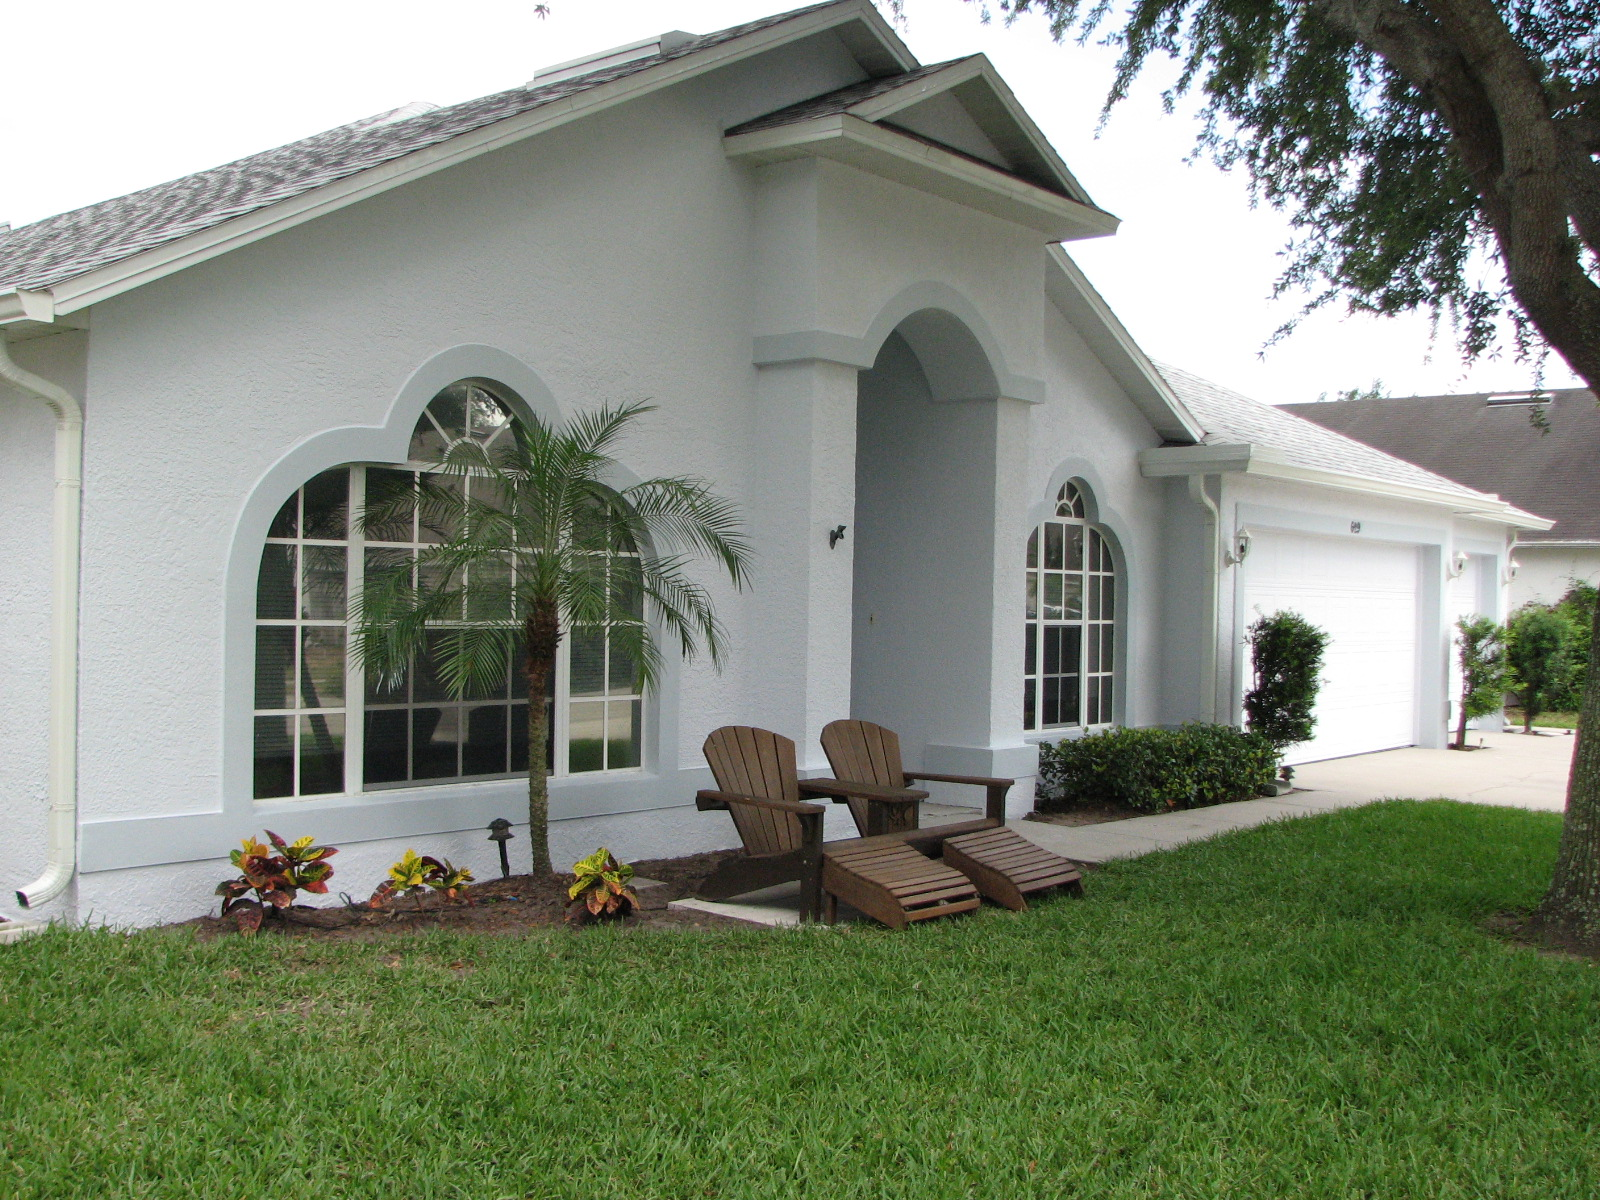 Merritt island fl exterior house painting project by peck for Florida house paint colors